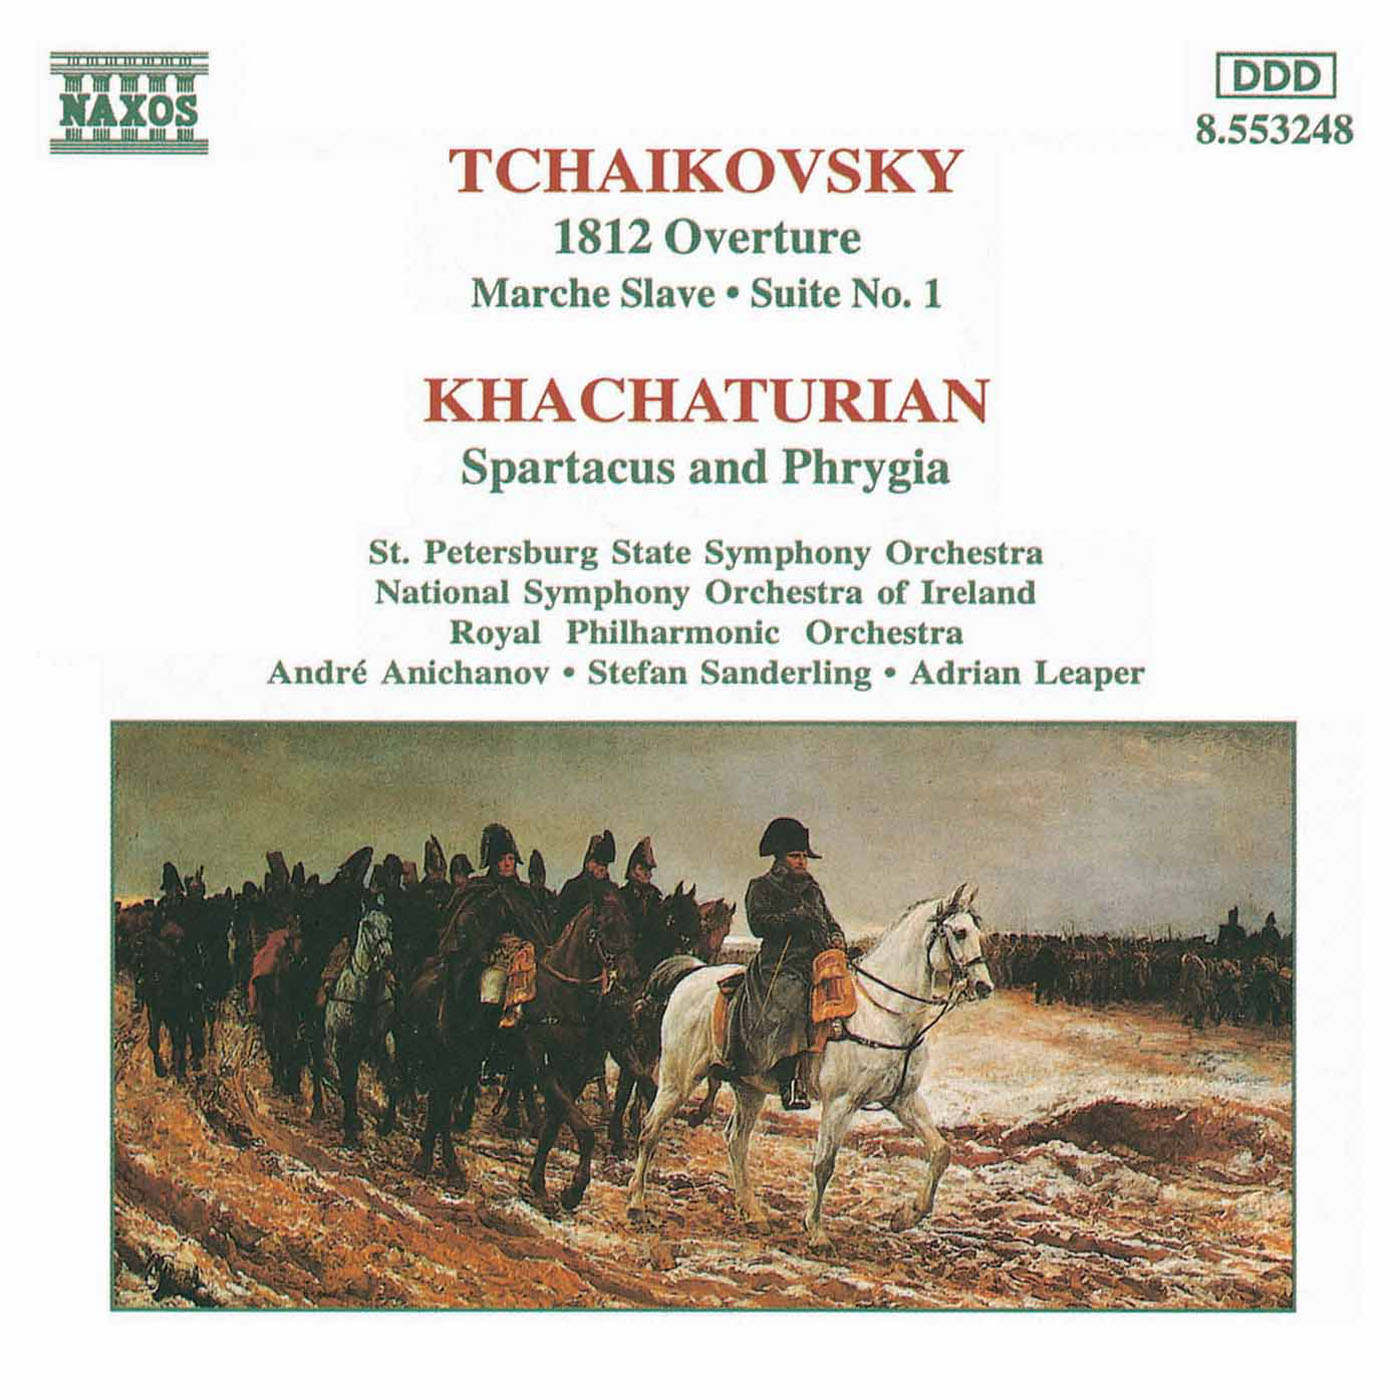 eClassical - Tchaikovsky, P I : 1812 Overture / Khachaturian